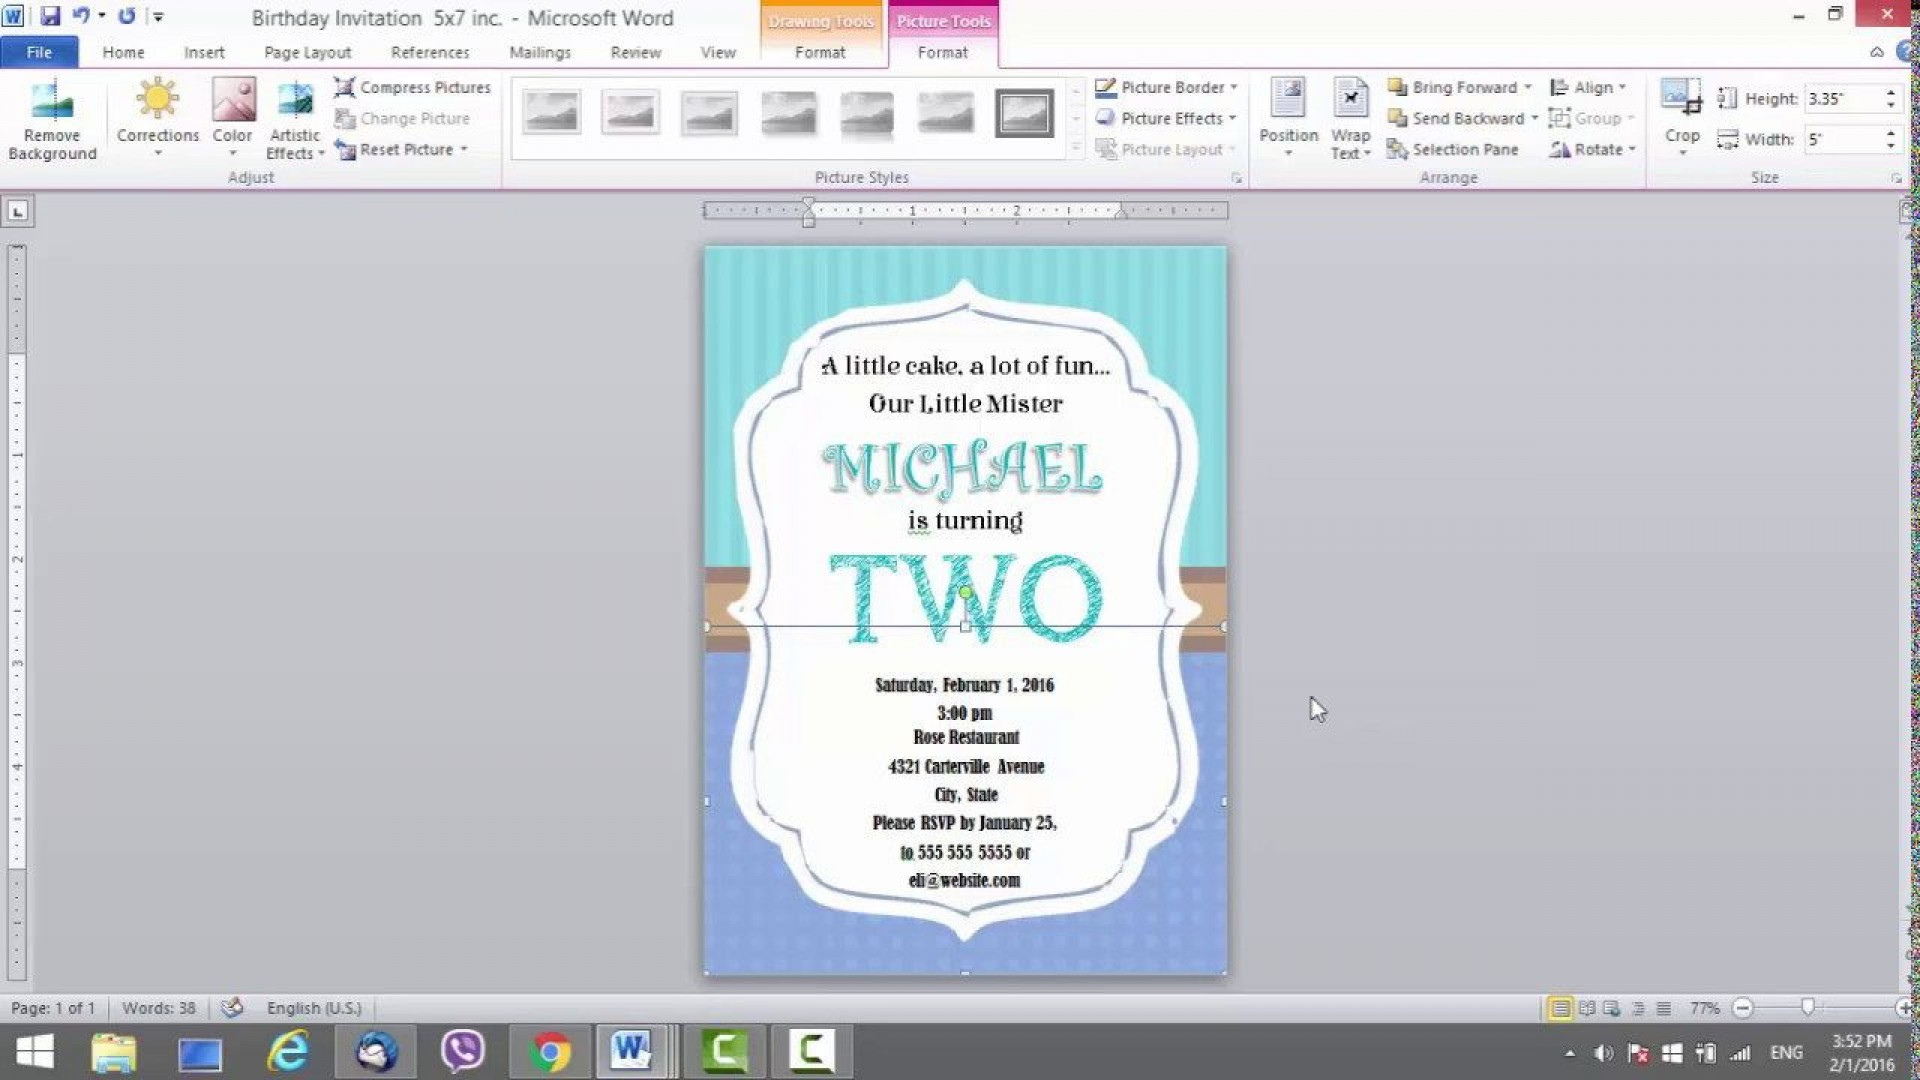 009 Magnificent Microsoft Word 2020 Birthday Invitation Template Idea 1920